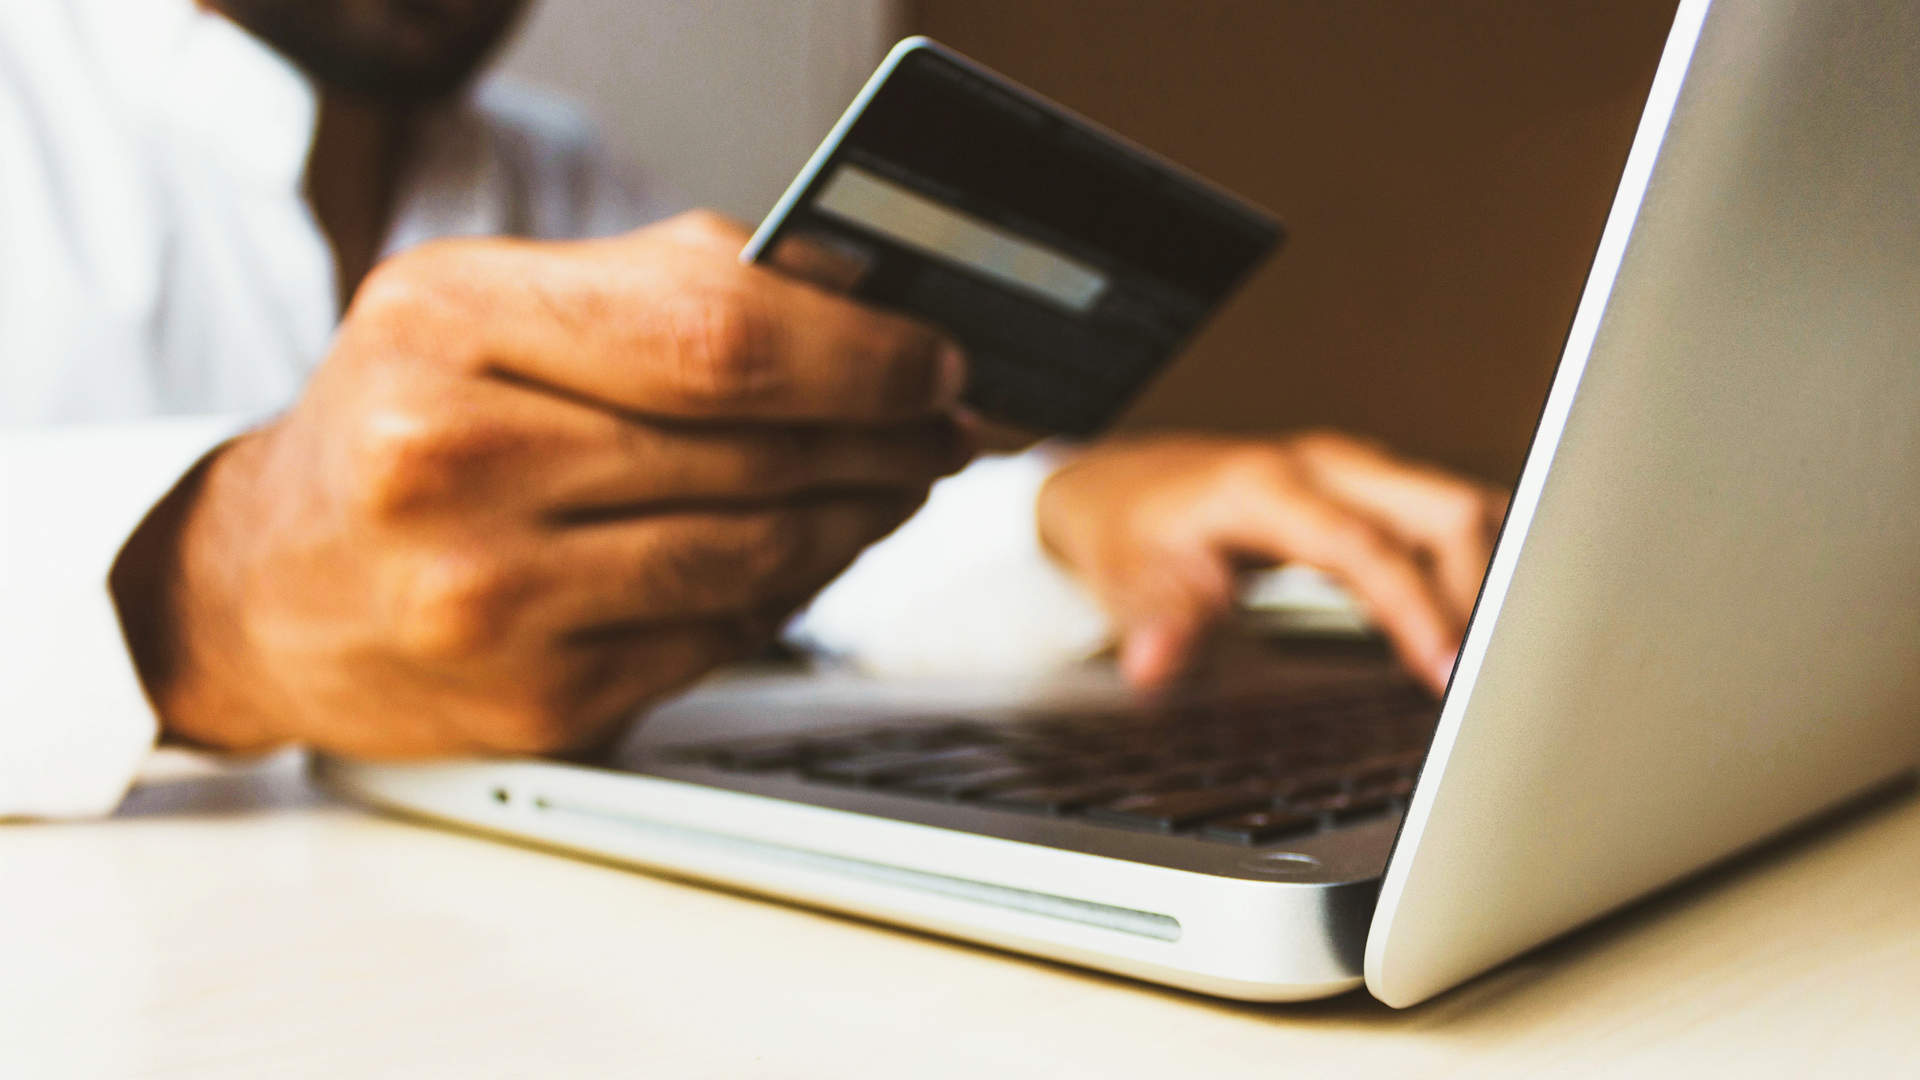 Amazon, Google, Facebook Eye Bigger Play In Indian Payments Space